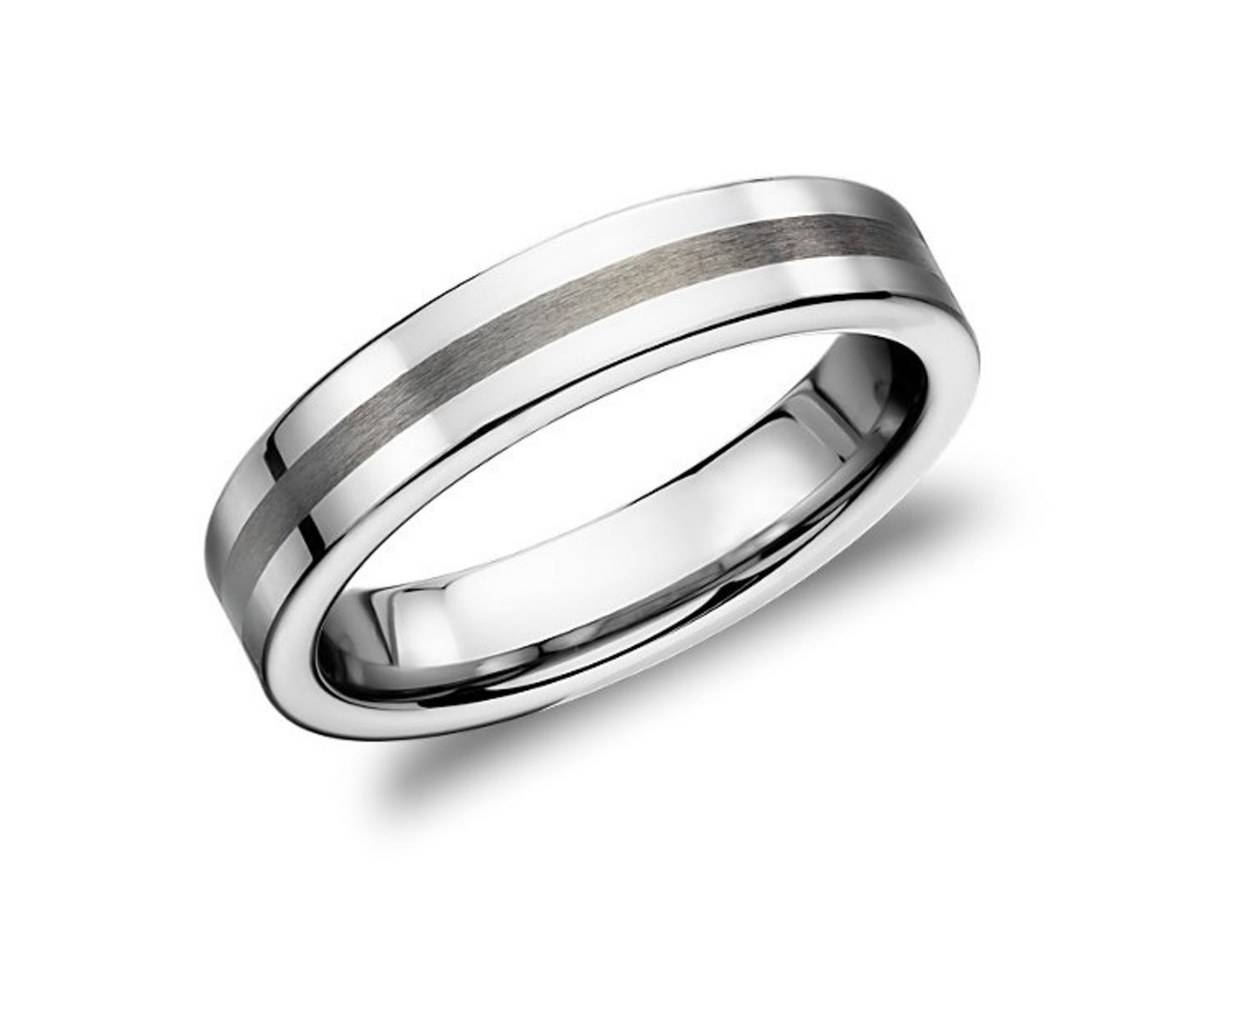 15 Men's Wedding Bands Your Groom Won't Want To Take Off | Glamour Regarding Dark Metal Wedding Bands (View 11 of 15)